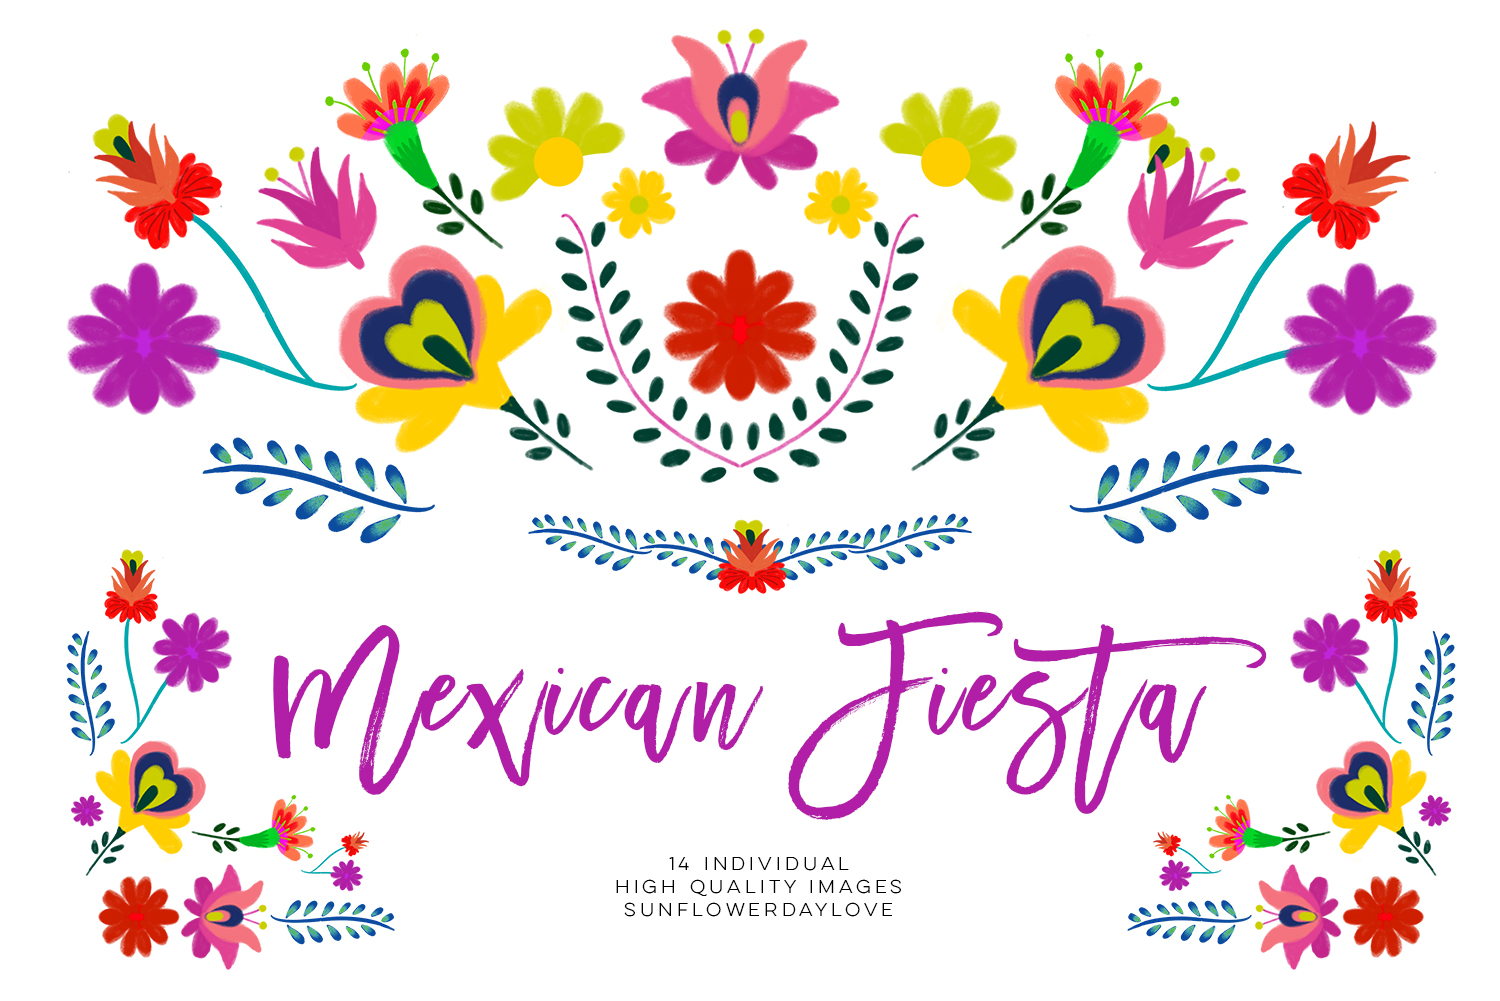 Floran clipart picture transparent stock Fiesta clipart, Mexican Watercolor Floral clipart, PNG mexican party clip  art, mexican flowers watercolor floral clip art, cinco de mayo - Vsual picture transparent stock